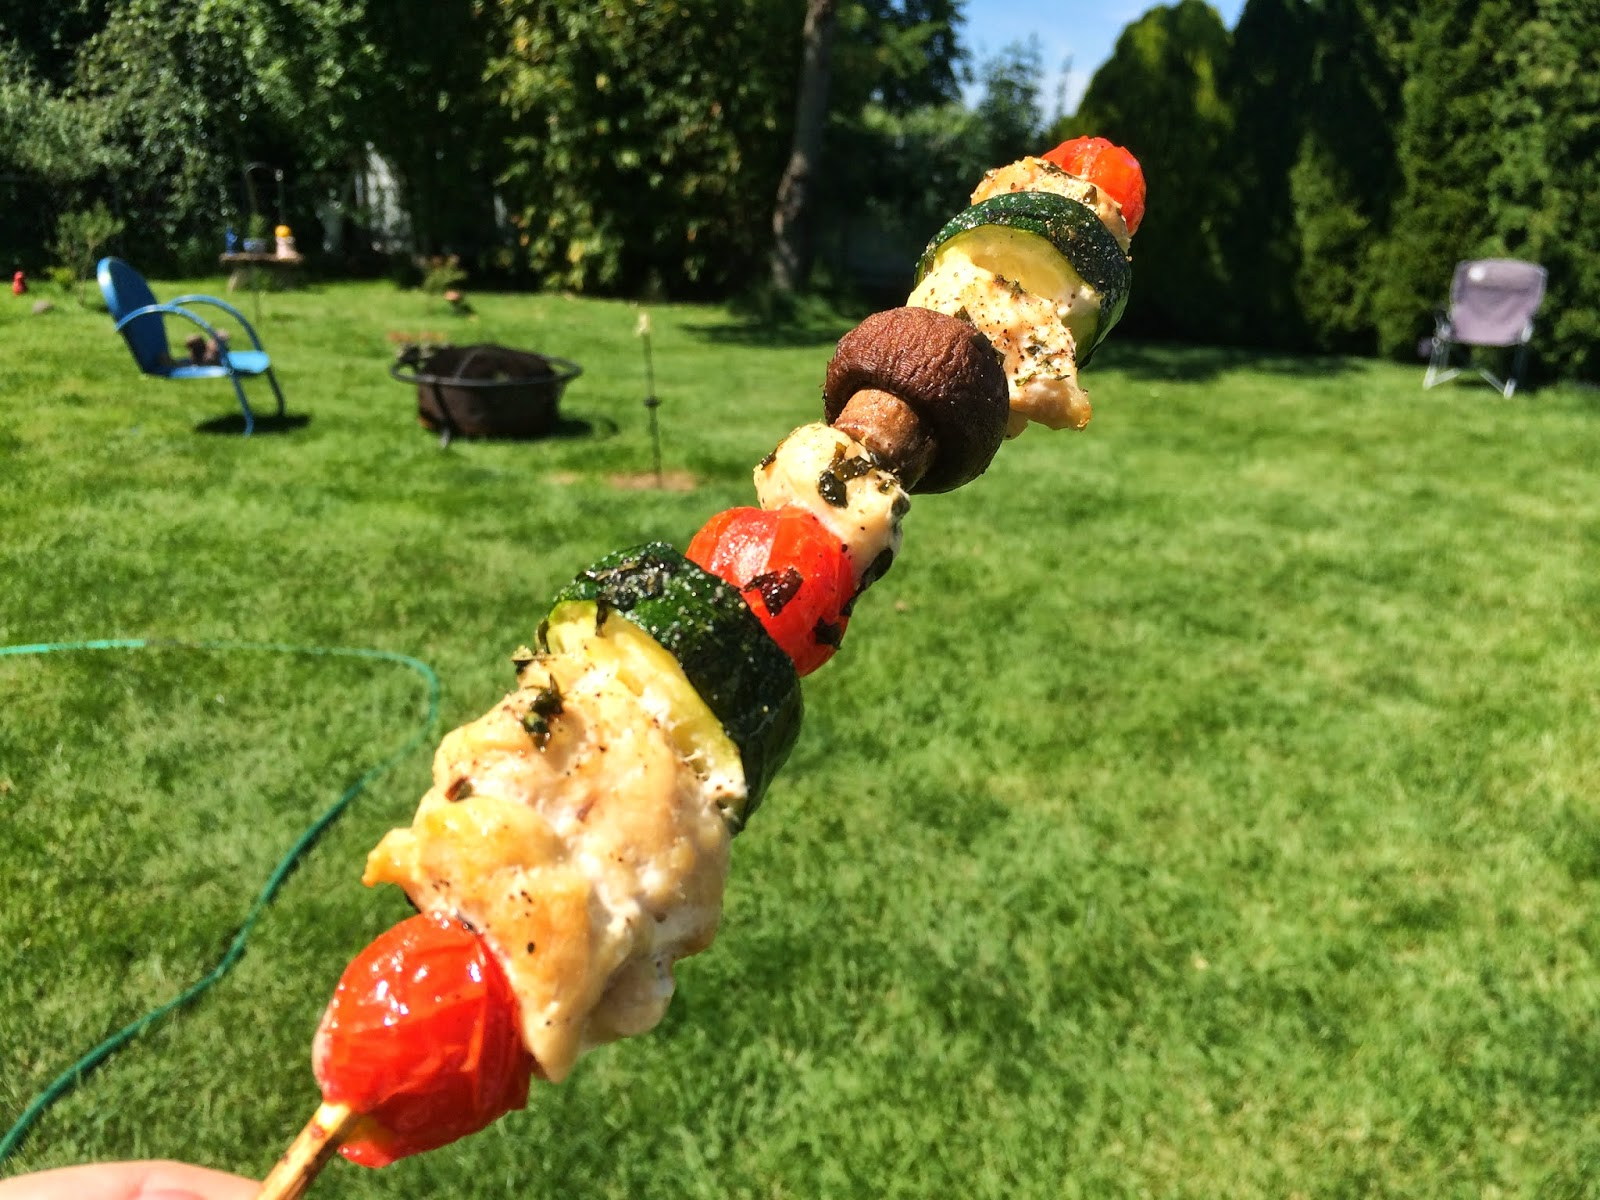 Grilling, chicken kabob, kabobs, Memorial Day BBQ